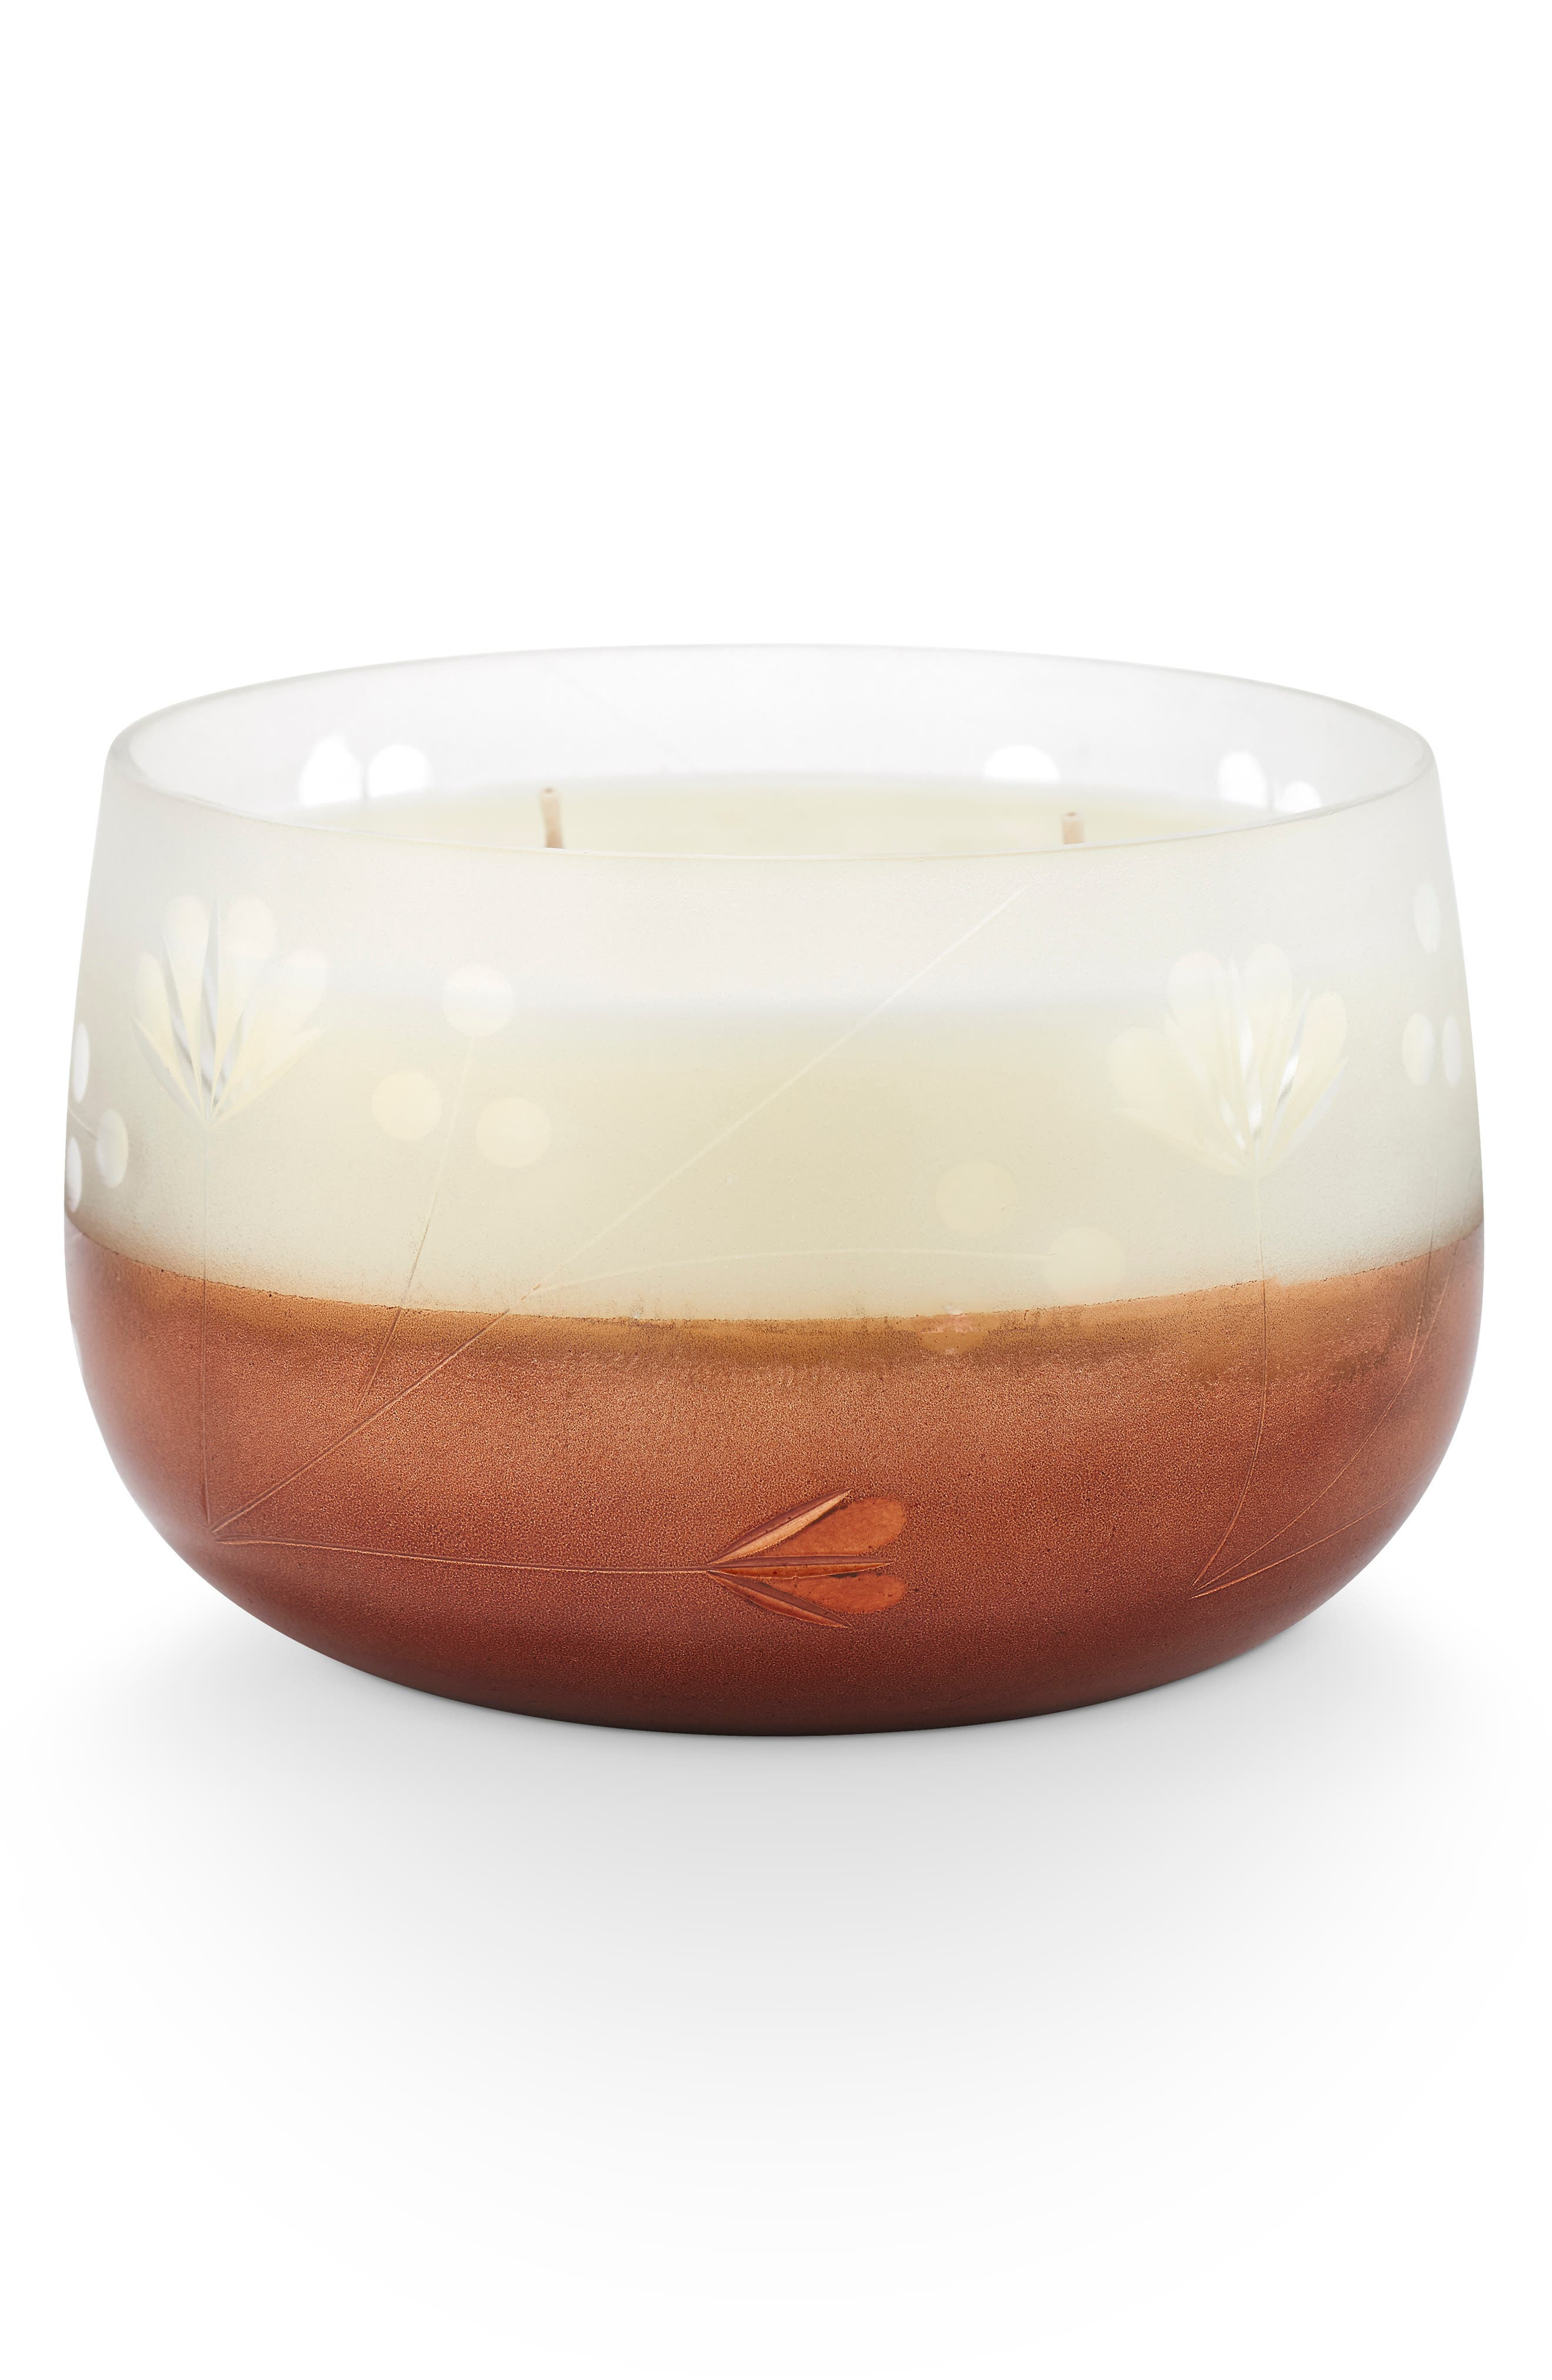 What it is: A fragrant candle housed in a leaved glass will bring a warm glow to any room. What it does: This candle features a wax base that\\\'s been pared down to a blend of only the best, 100% naturally derived waxes and oil for an even, clean burn. Fragrance story: Notes of roasted chestnuts, cinnamon and coconut create the quintessential fragrance of fall. Style: Warm, spicy. Notes:- Top: roasted chestnuts- Middle: cinnamon- Base: coconut.